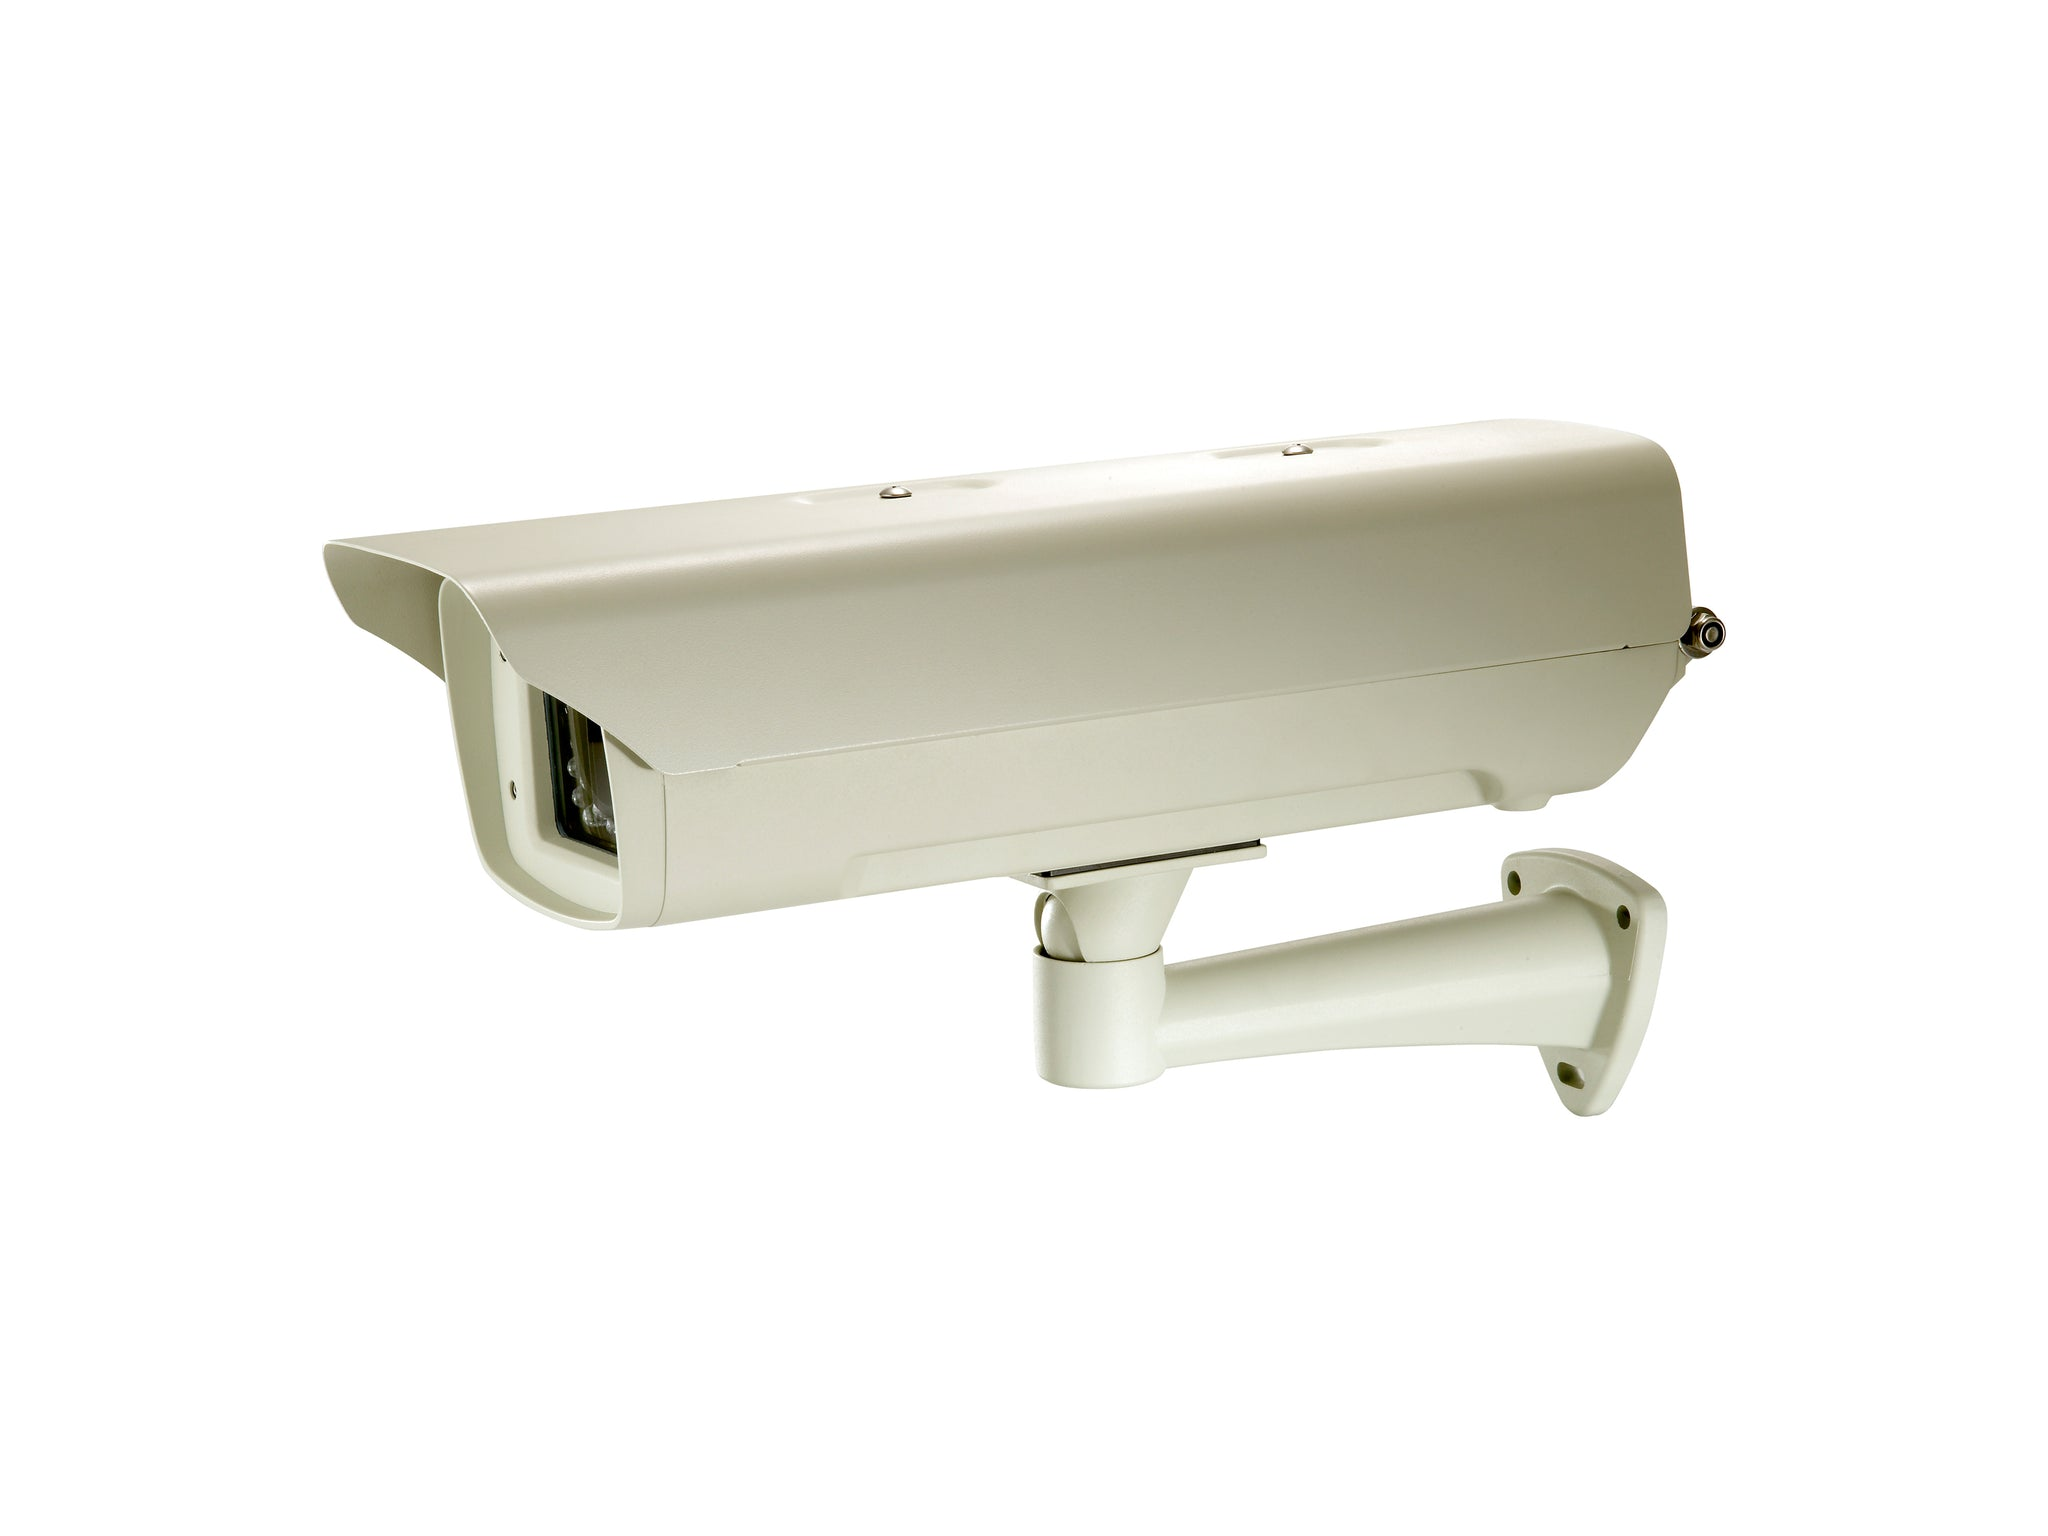 BOH-1411 Camera PoE Outdoor Enclosure, IR LEDs, FEVE Coating